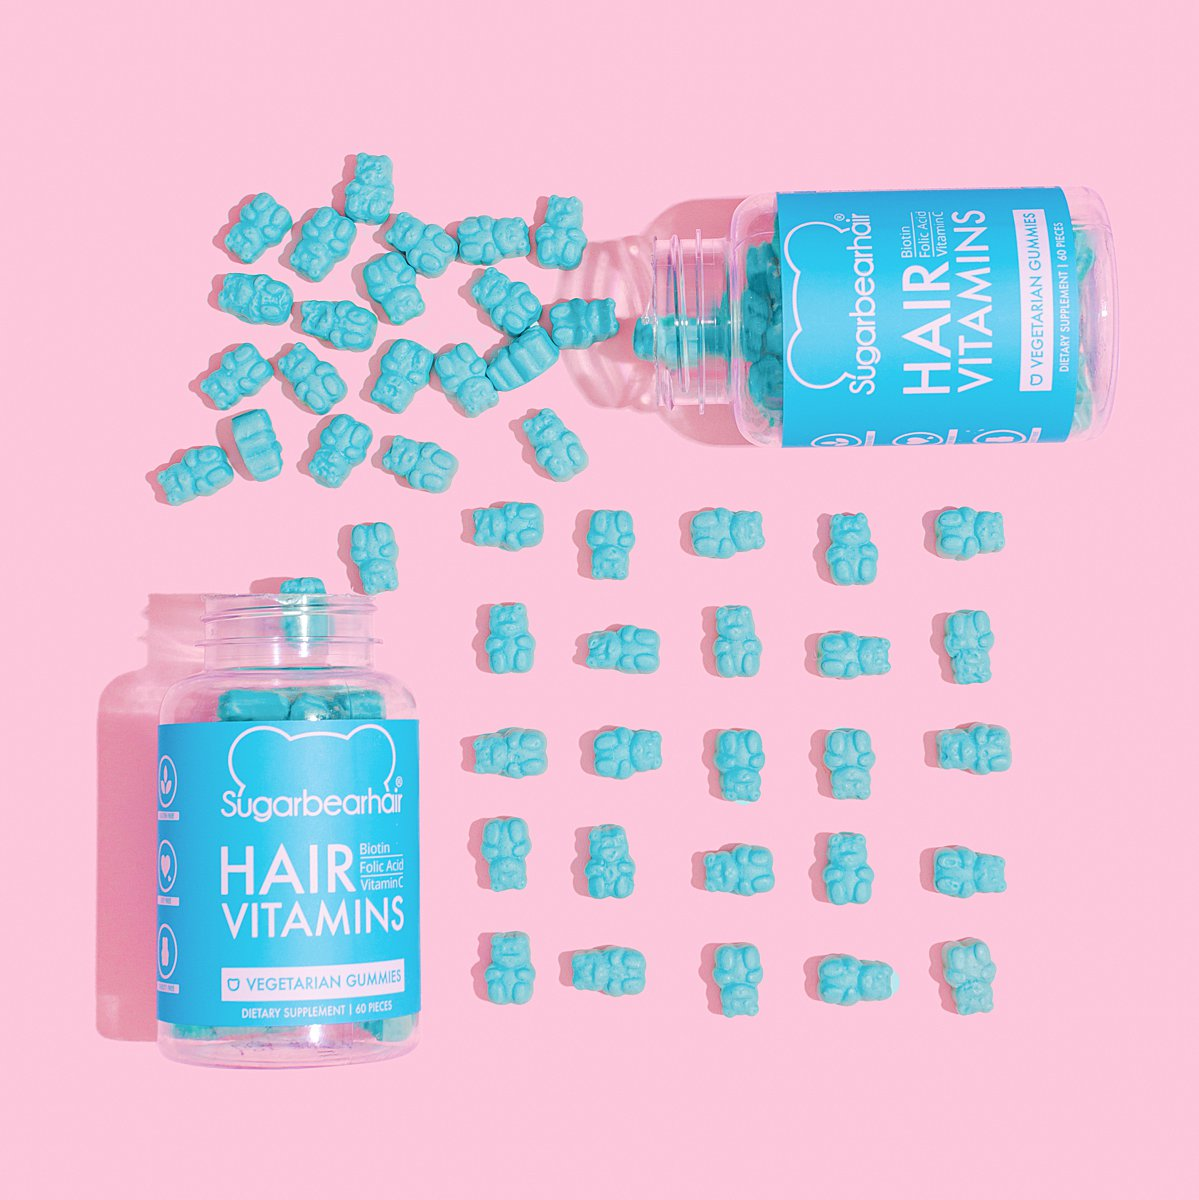 Colourful content creation for SugarBearHair vitamins. Styled product photography by Marianne Taylor.